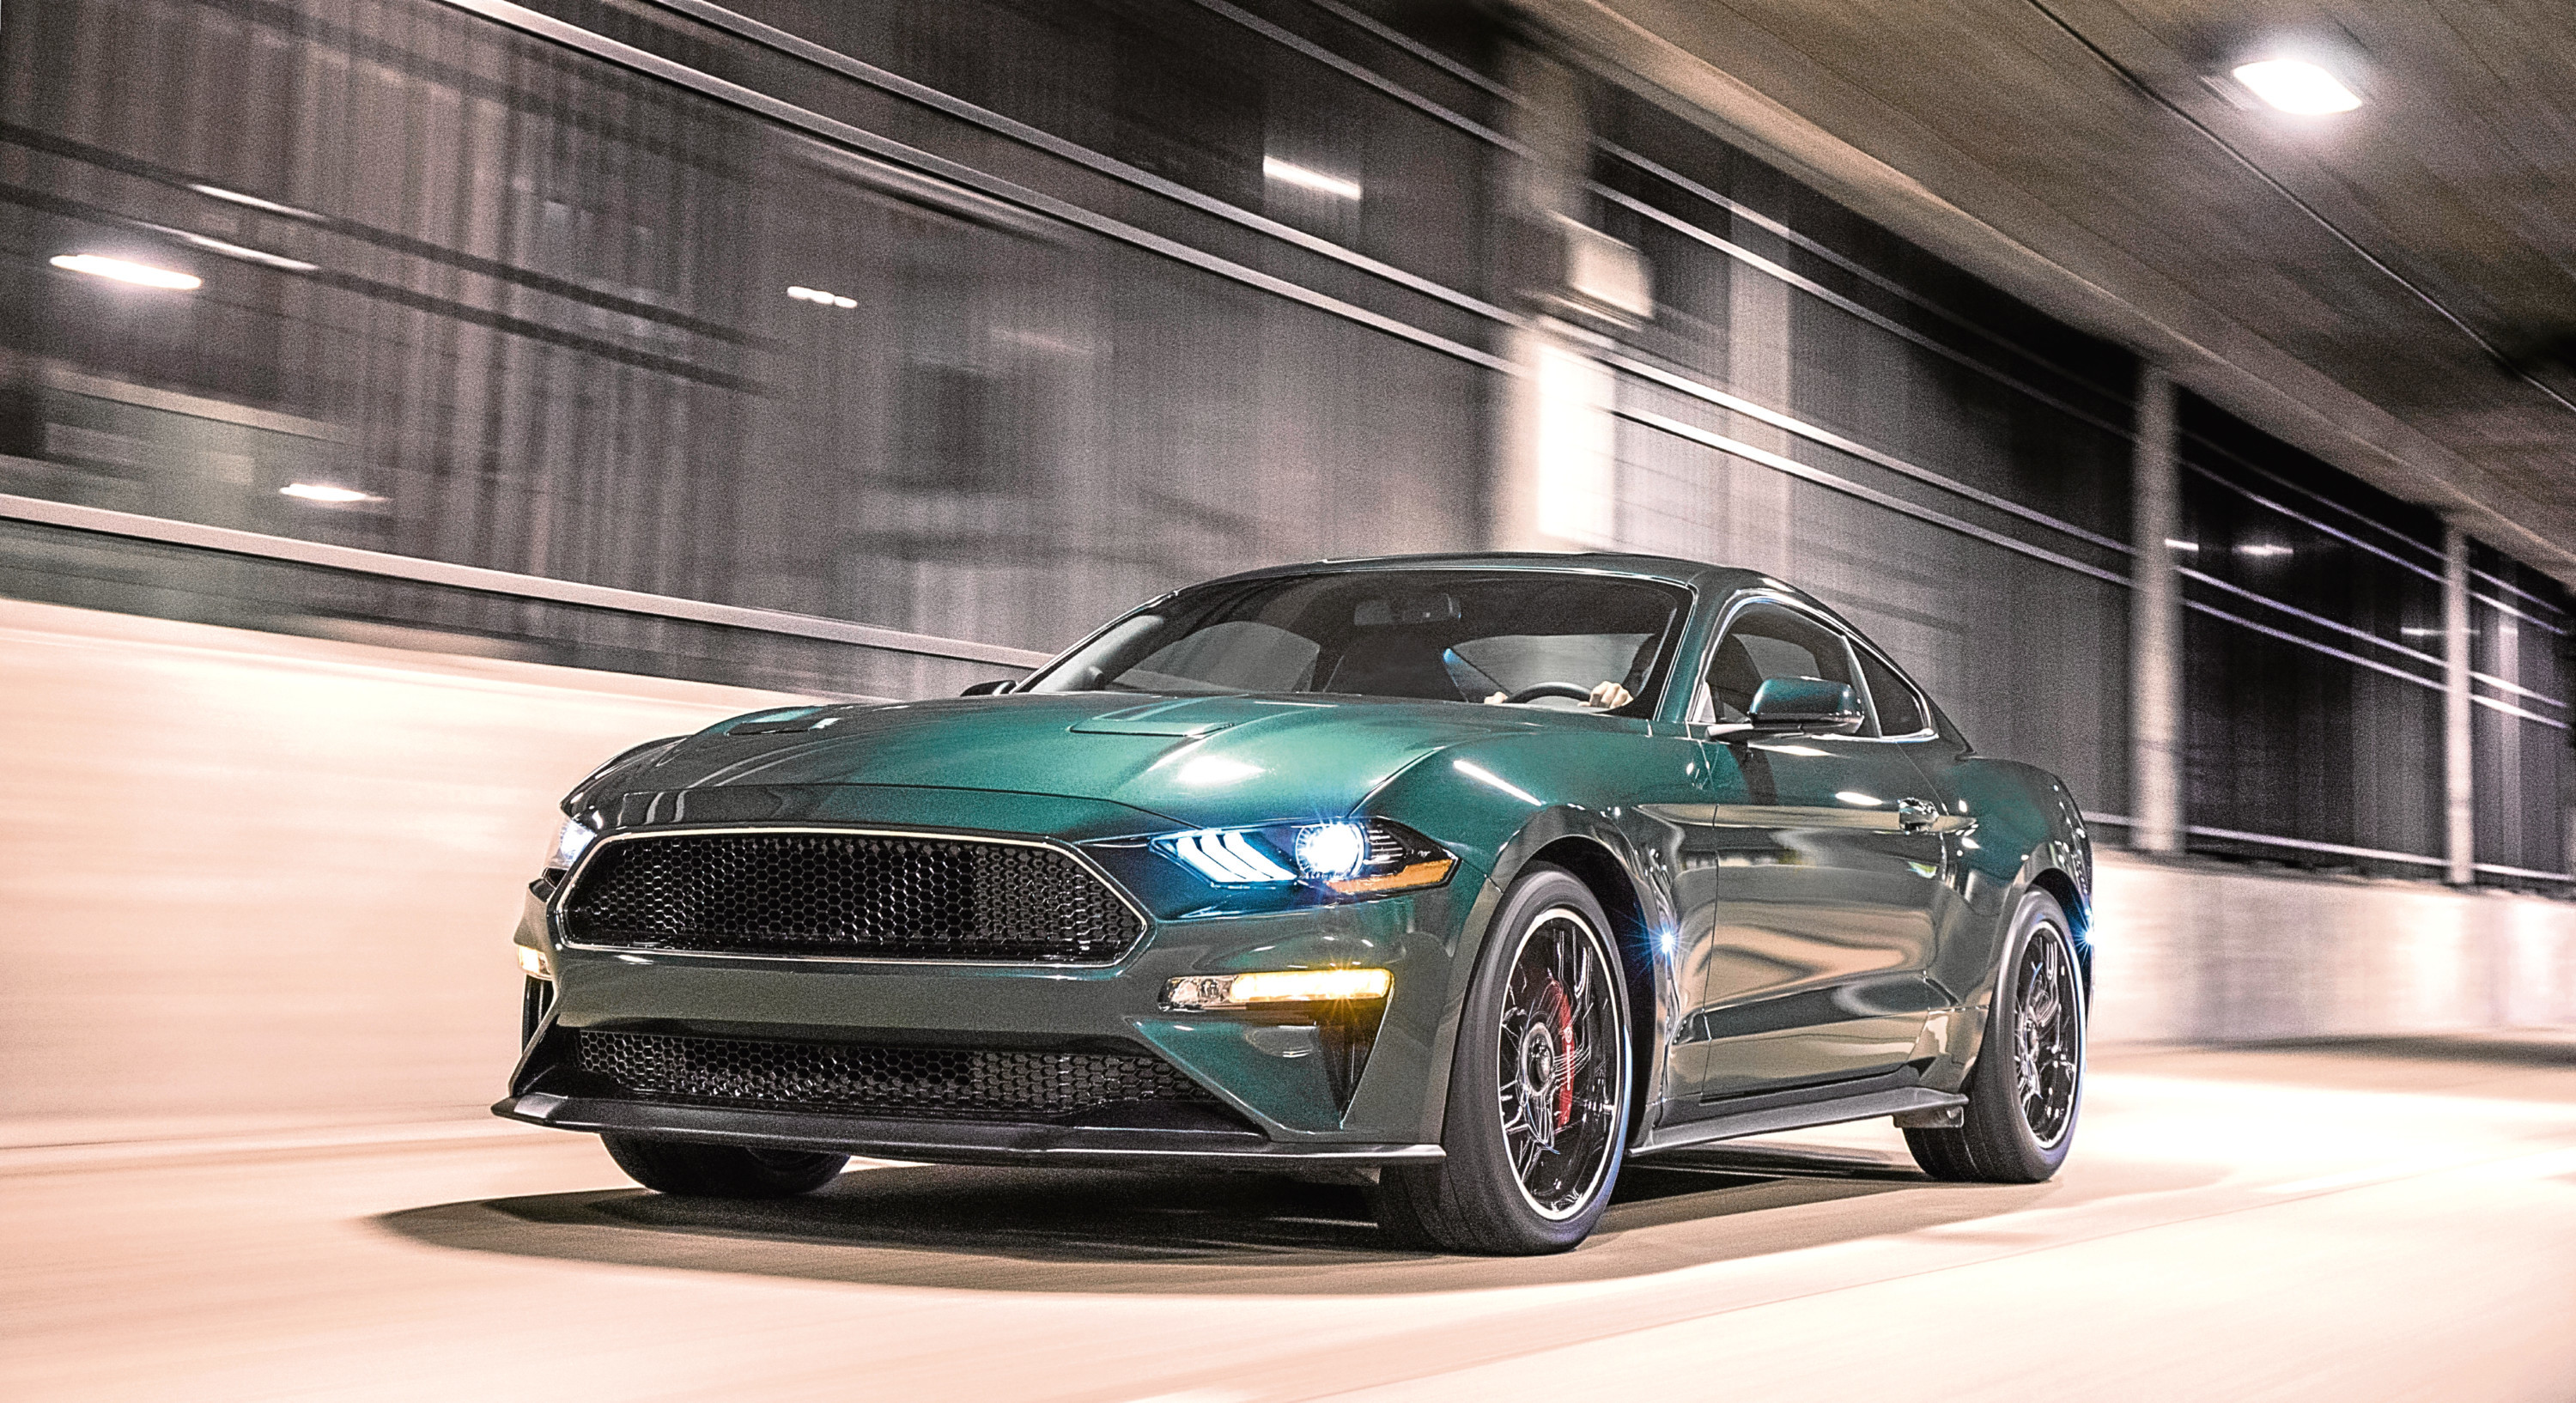 Celebrating the 50th anniversary of iconic movie Bullitt and its fan-favorite San Francisco car chase, Ford introduces the new cool and powerful 2019 Mustang Bullitt.